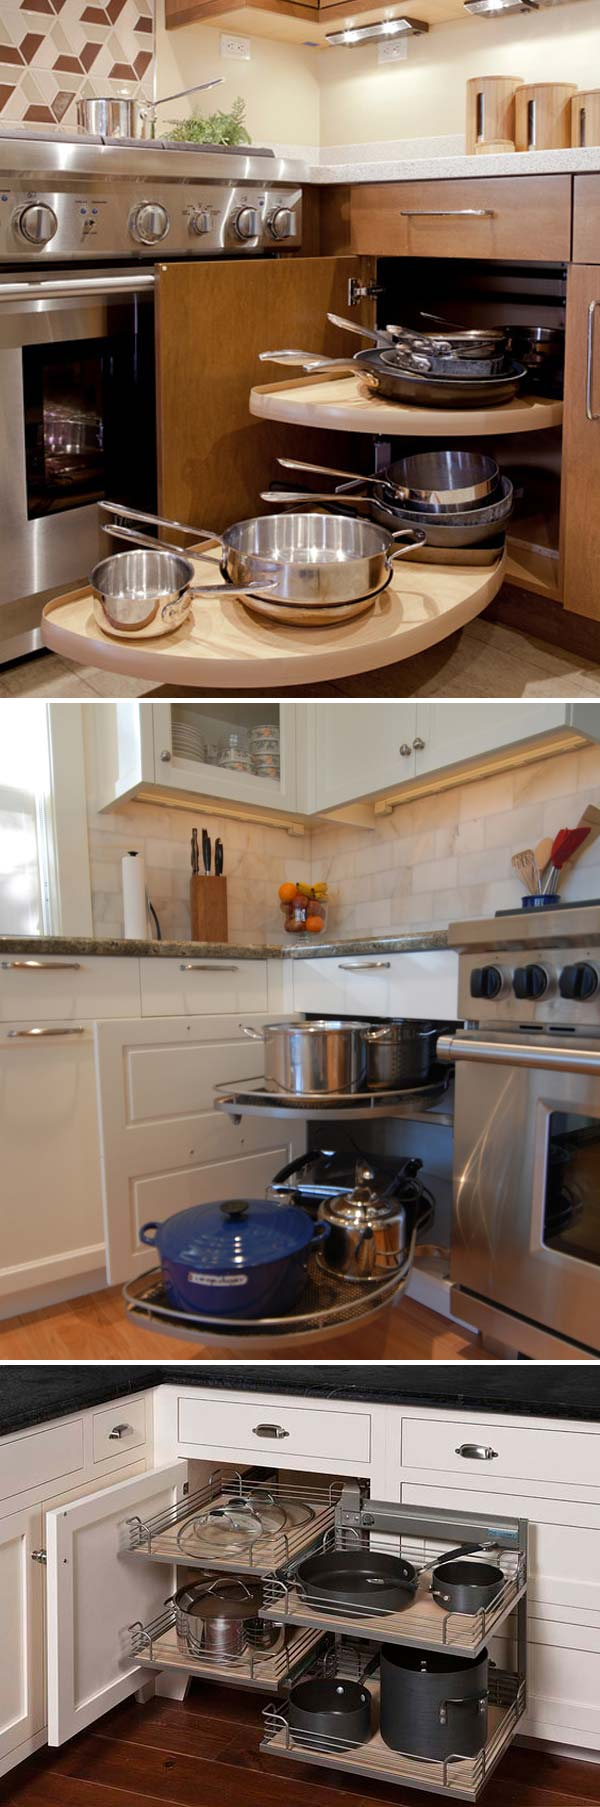 Fabulous Hacks To Utilize The Space Of Corner Kitchen Cabinets Amazing DIY